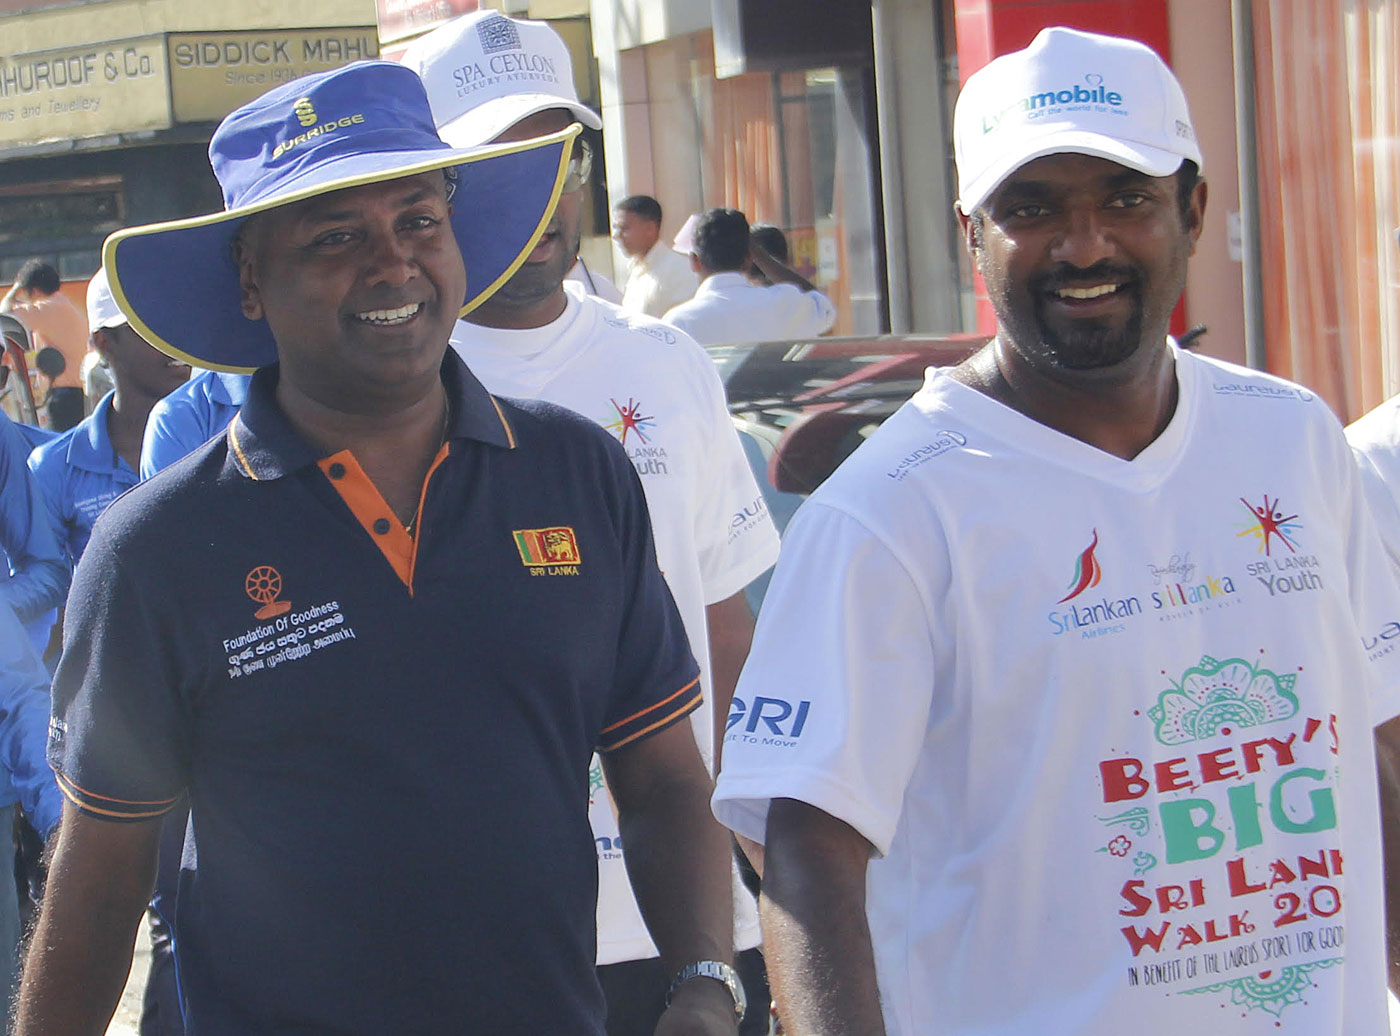 Kushil Gunasekera's association with Murali began in 2000, and he went on to be Murali's manager